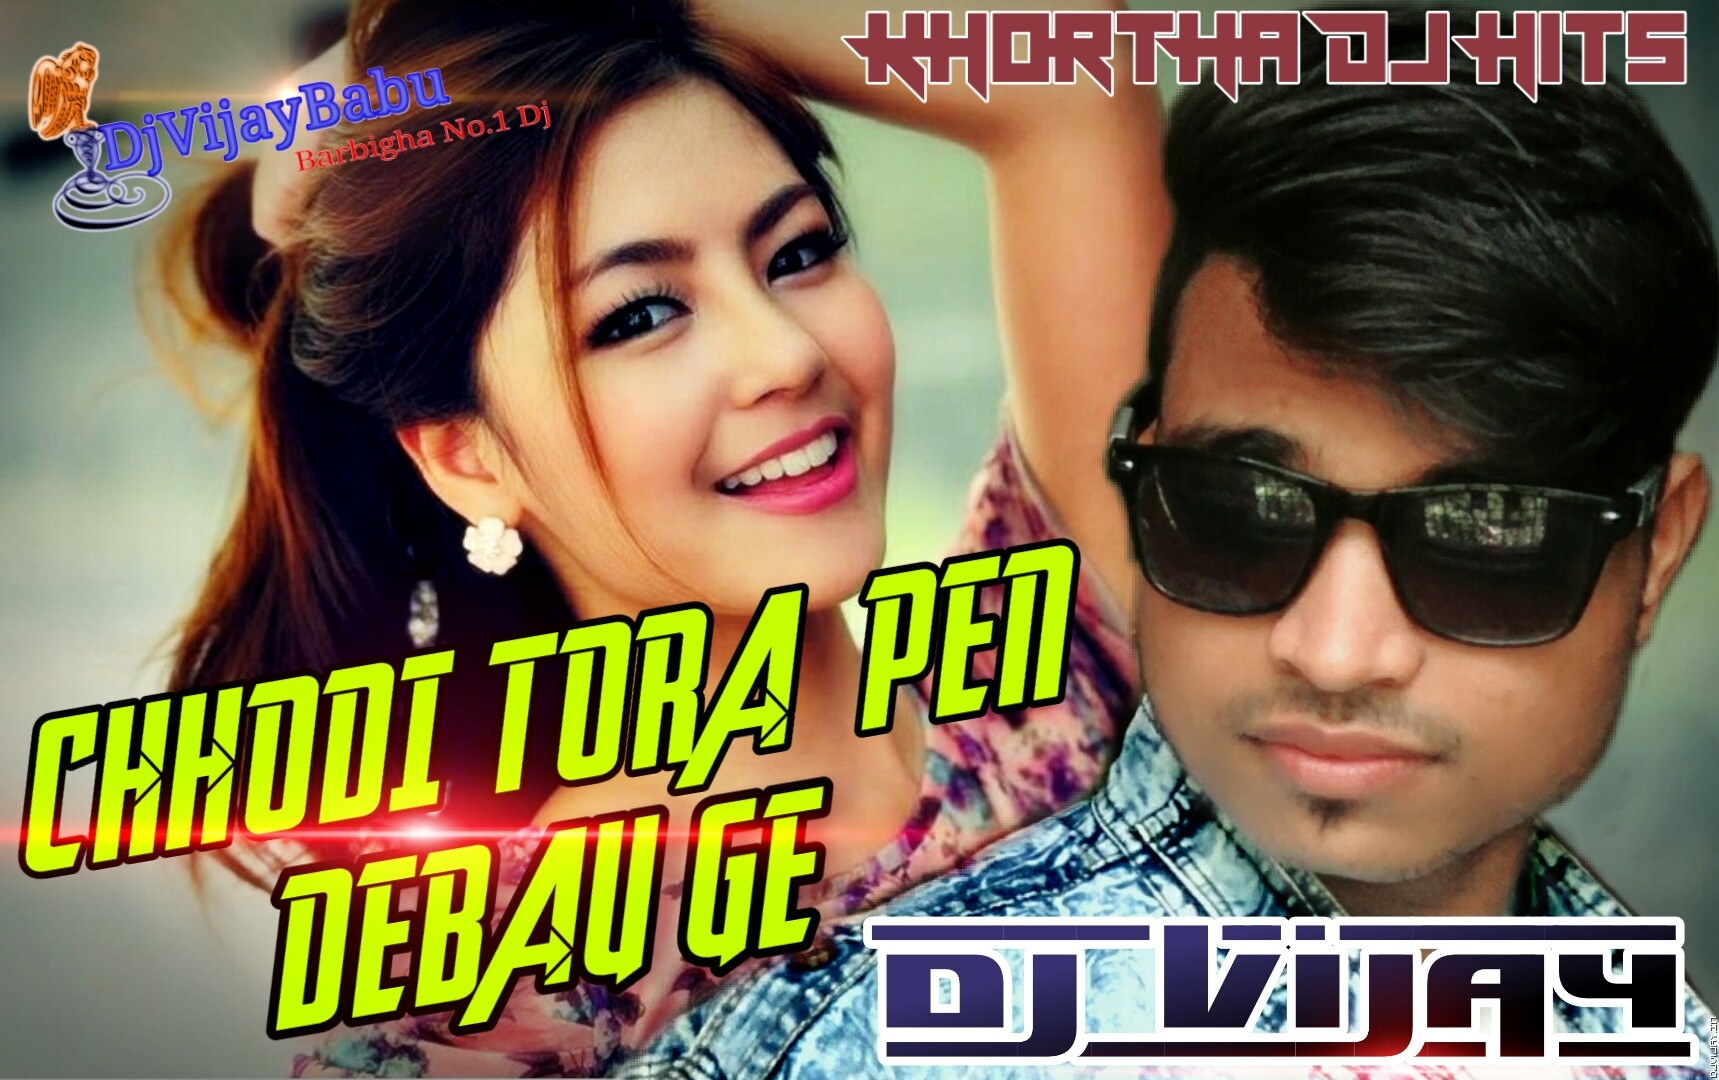 Amor Dila Ge Vs Riba Riba Super Crazy Dance Mix Dj Vijay.mp3